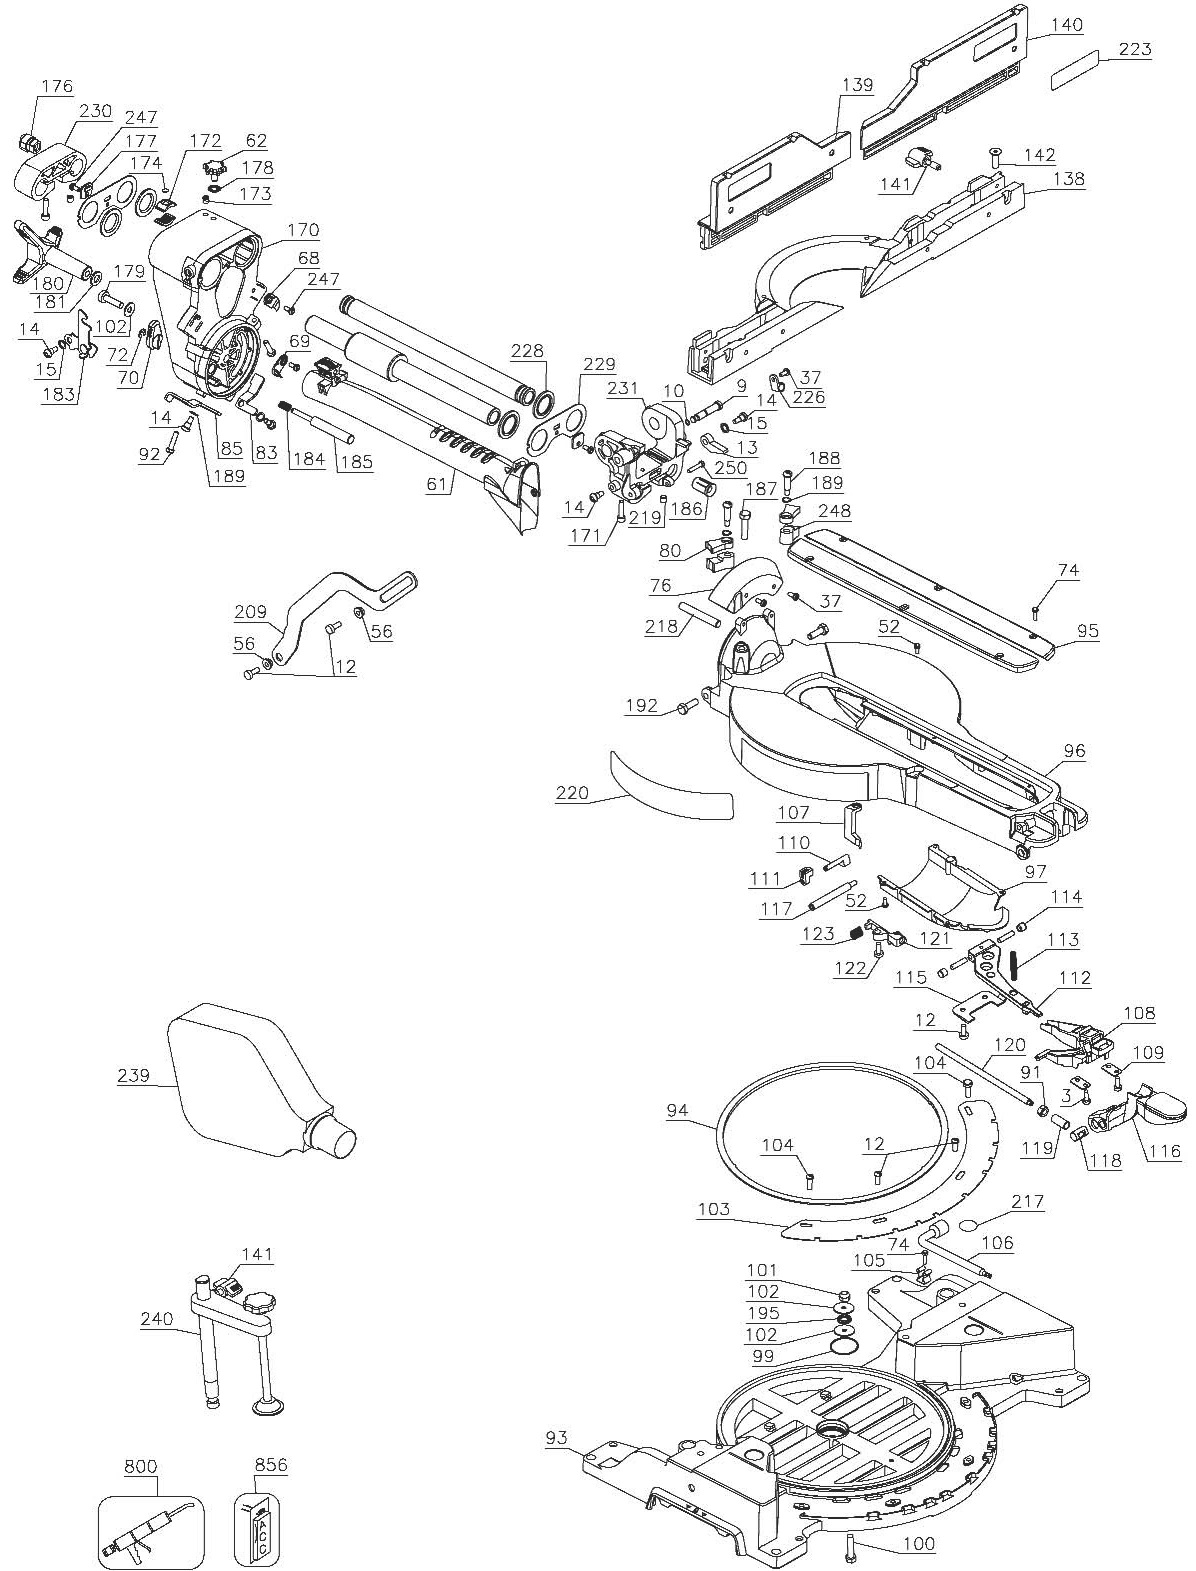 Wiring Diagram For Holden Barina